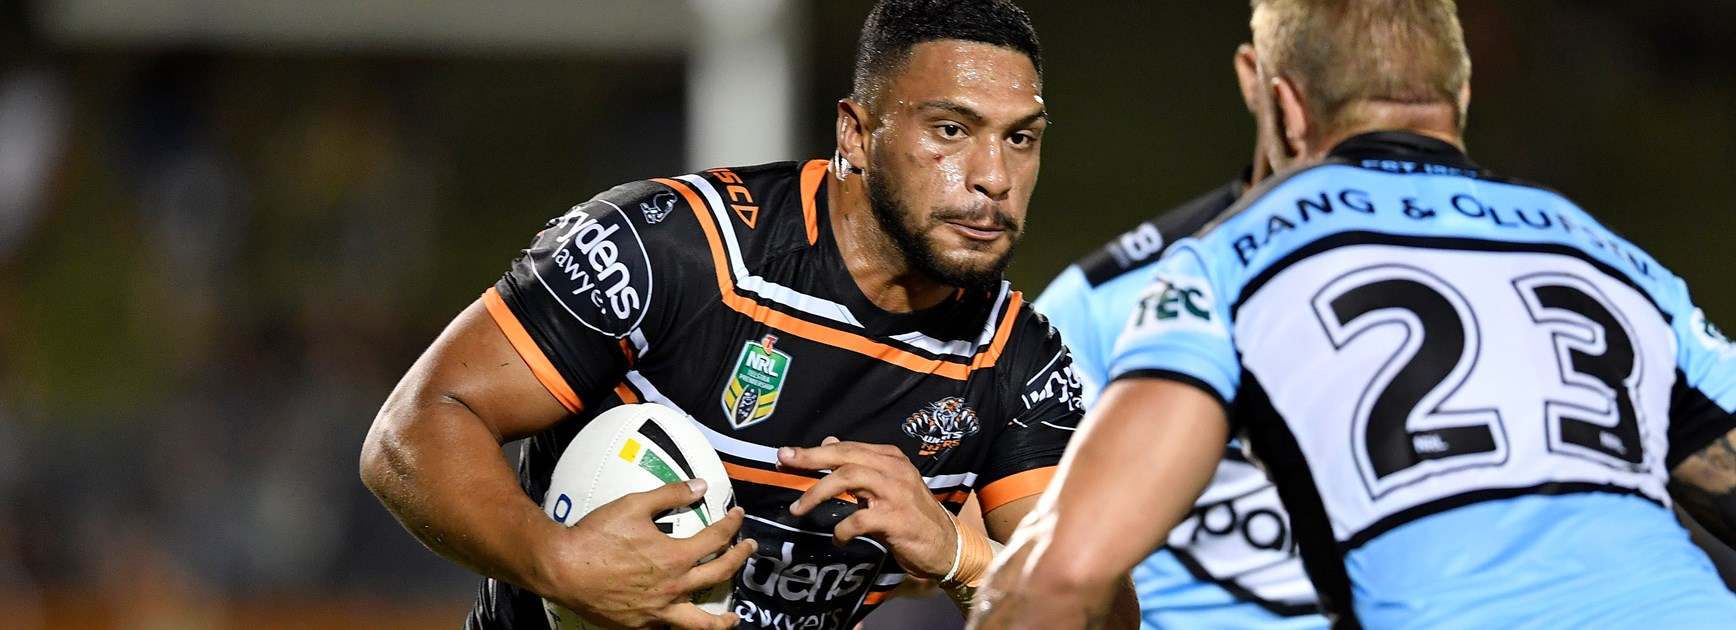 Sacked Wests Tigers centre Taane Milne.